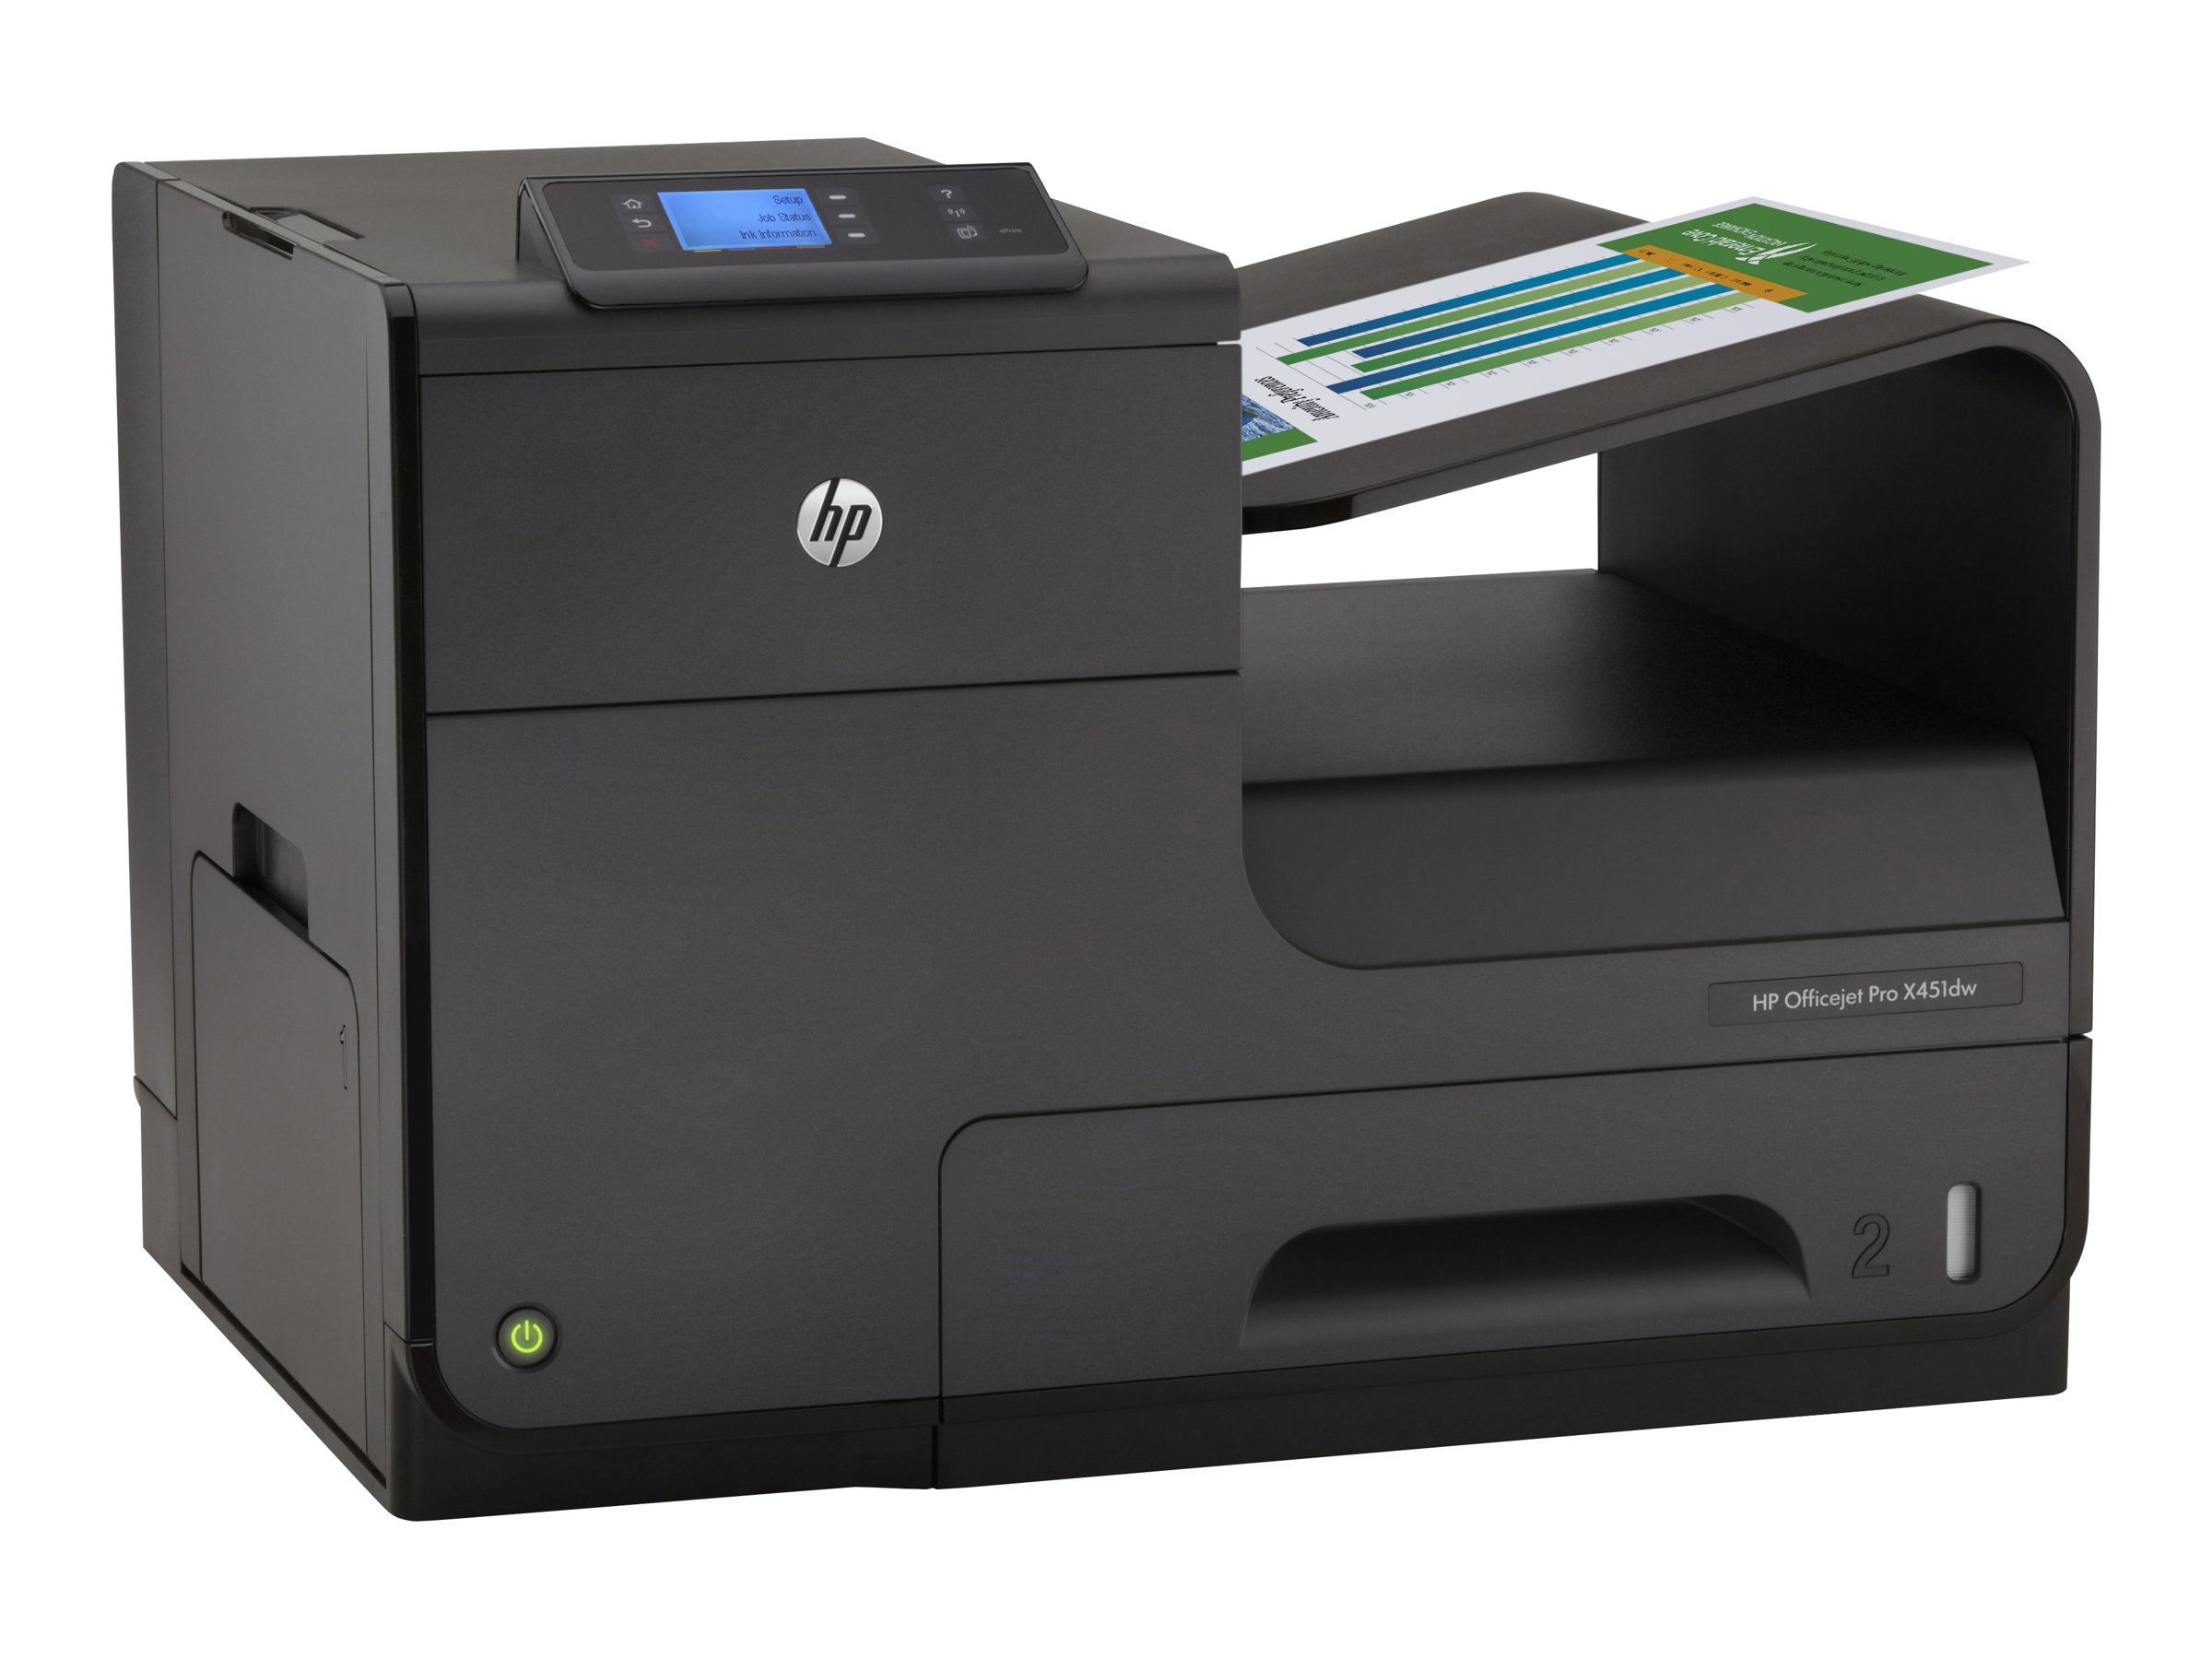 HP Officejet Pro X Series X451dw Color Printer, CN463A#B1H